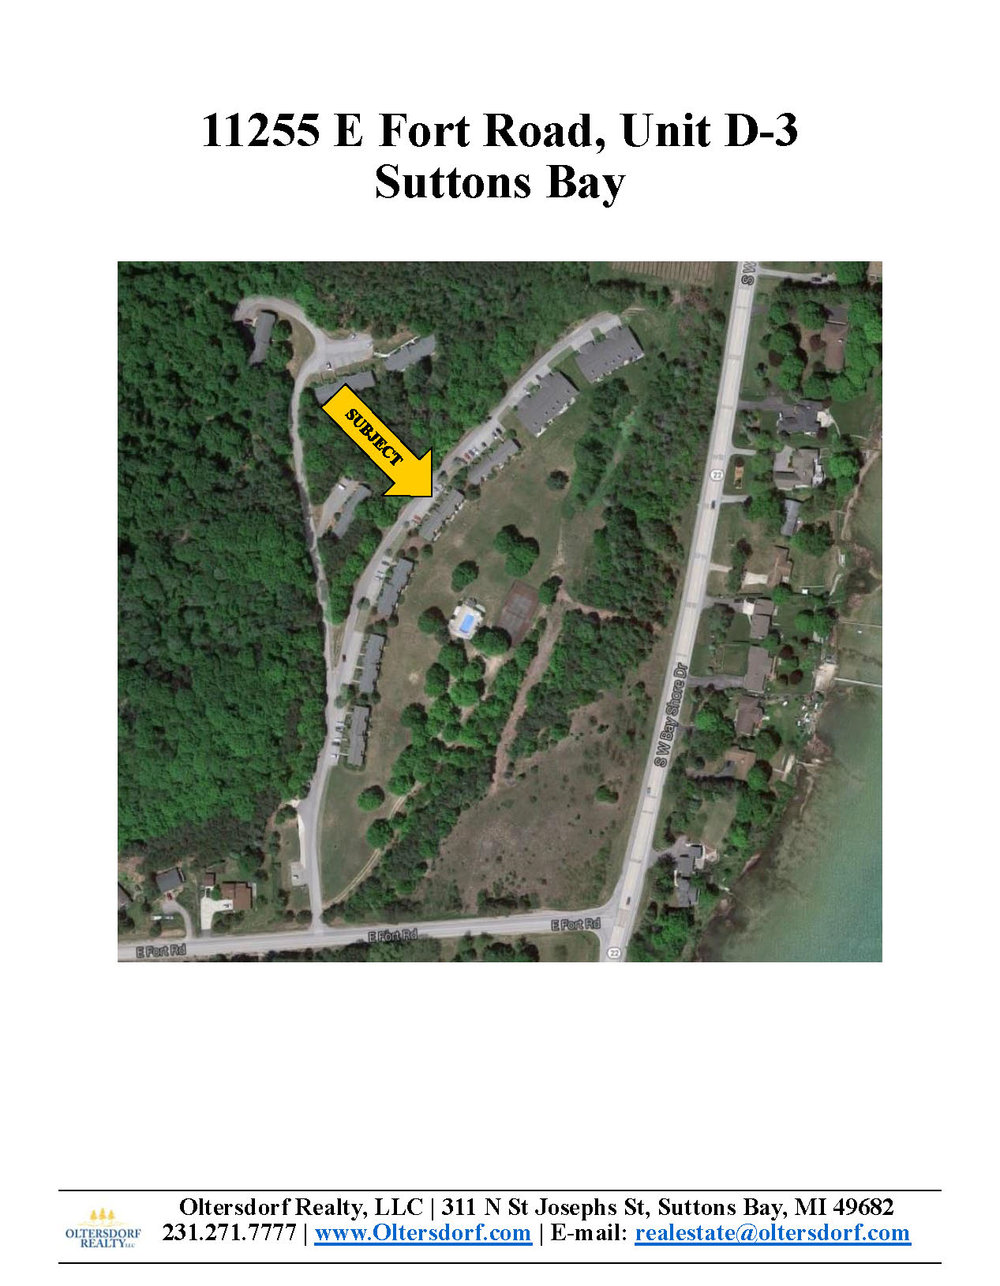 11255 E Fort Road Marketing Packet, Suttons Bay - for Sale by Oltersdorf Realty LLC (5).jpg